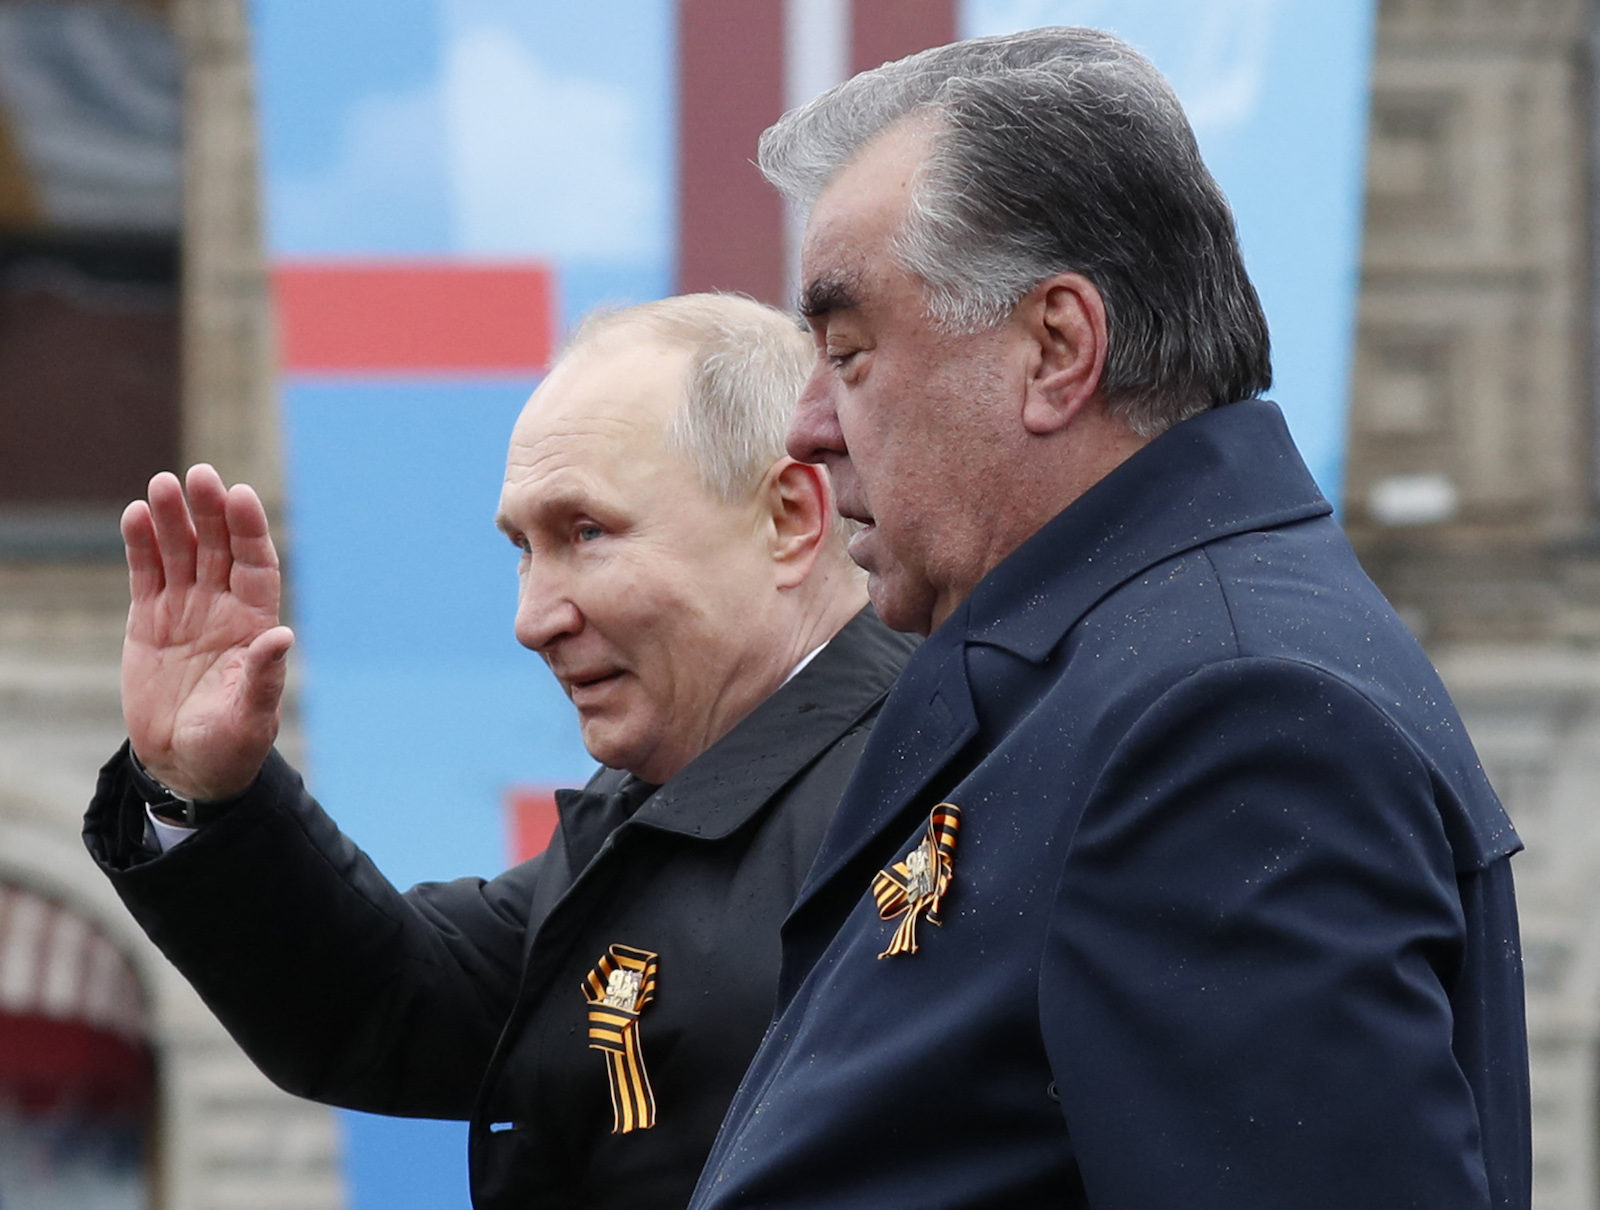 Russian President Vladimir Putin and Tajik President Emomali Rahmon leave after this year's Victory Day Parade on May 9, which marked the 76th anniversary of the victory over Nazi Germany in World War Two, in Red Square in central Moscow, Russia. Photo: AFP / Dmitry Astakhov / Sputnik